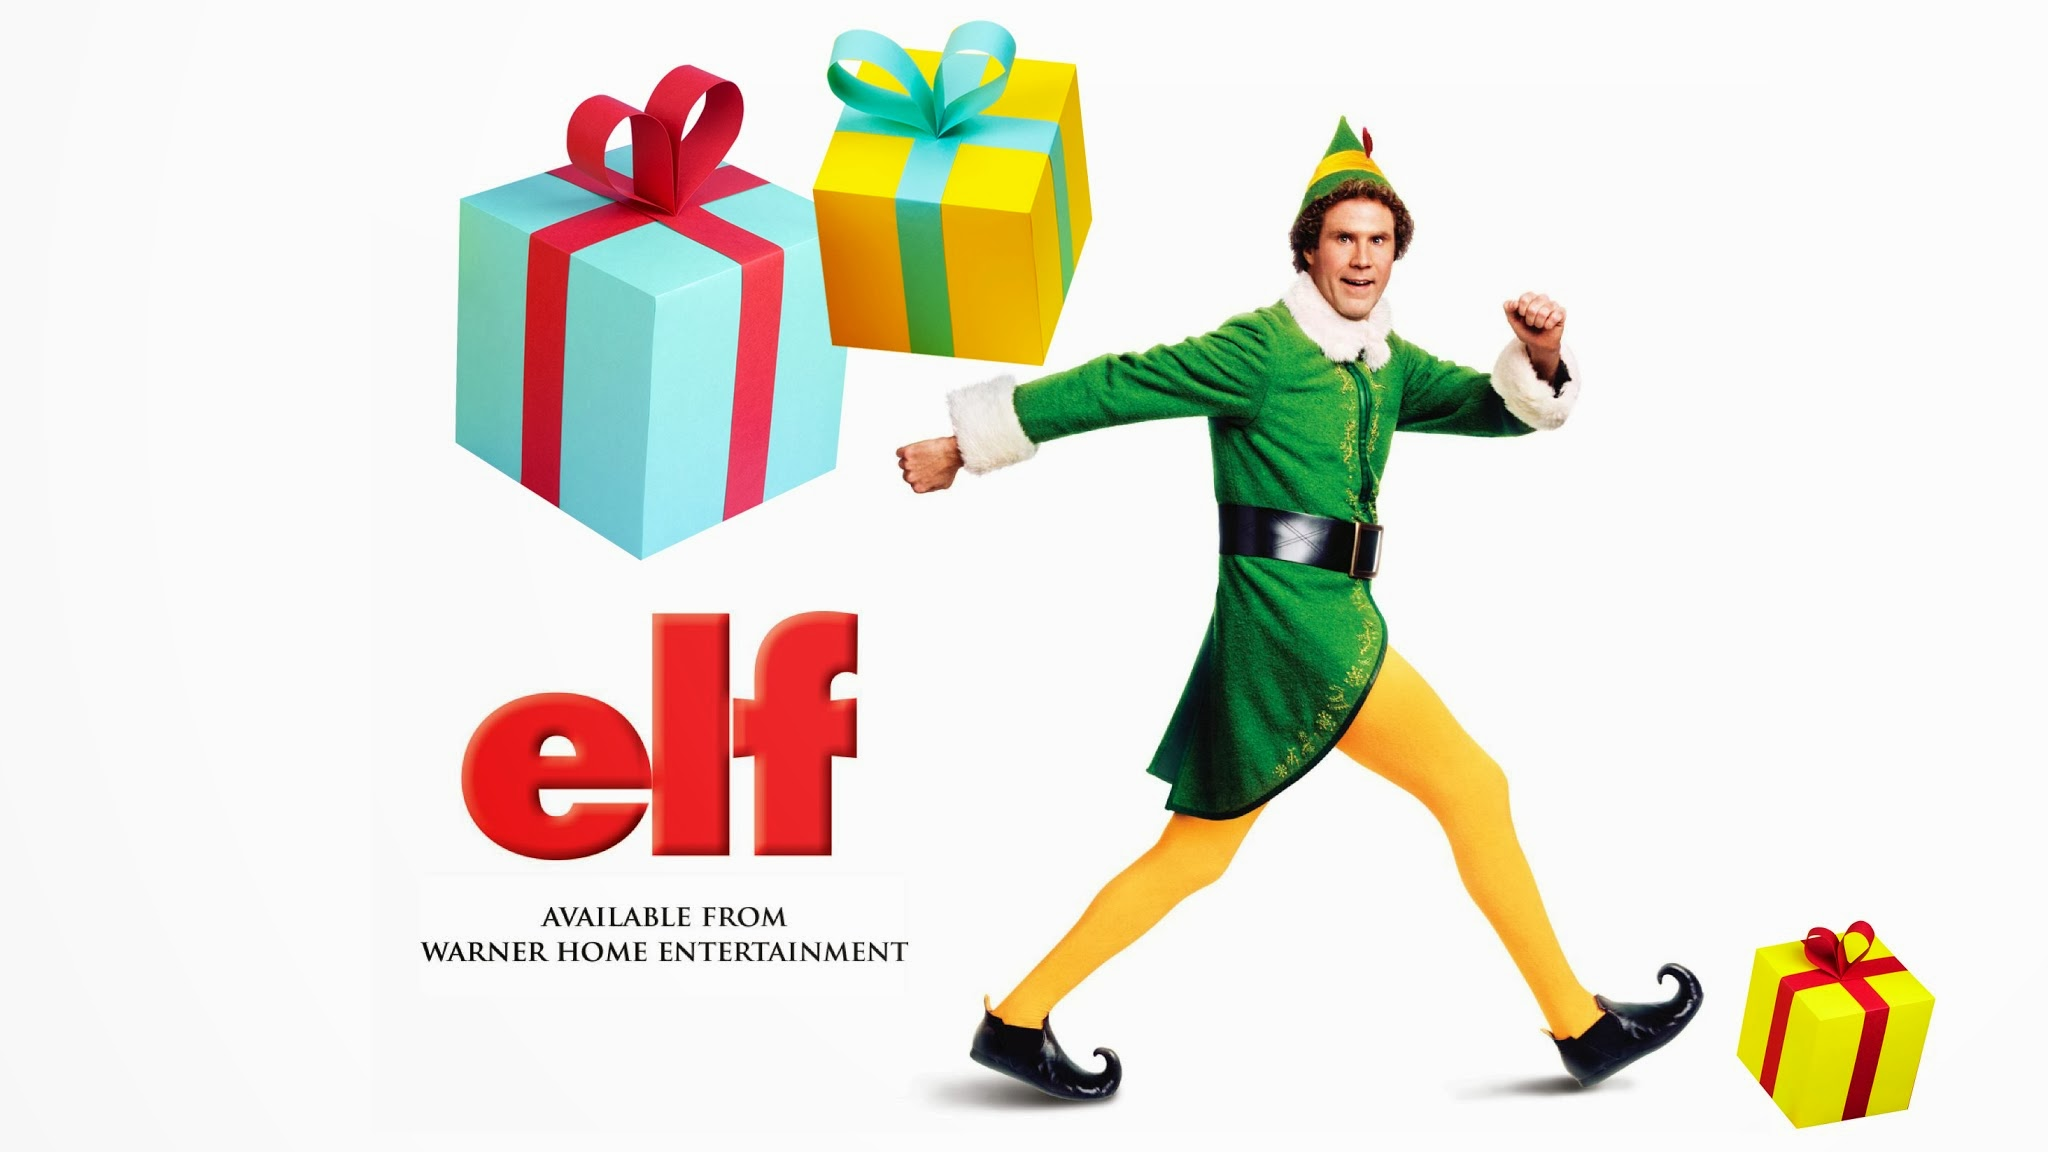 ELF comedy christmas poster d wallpaper background